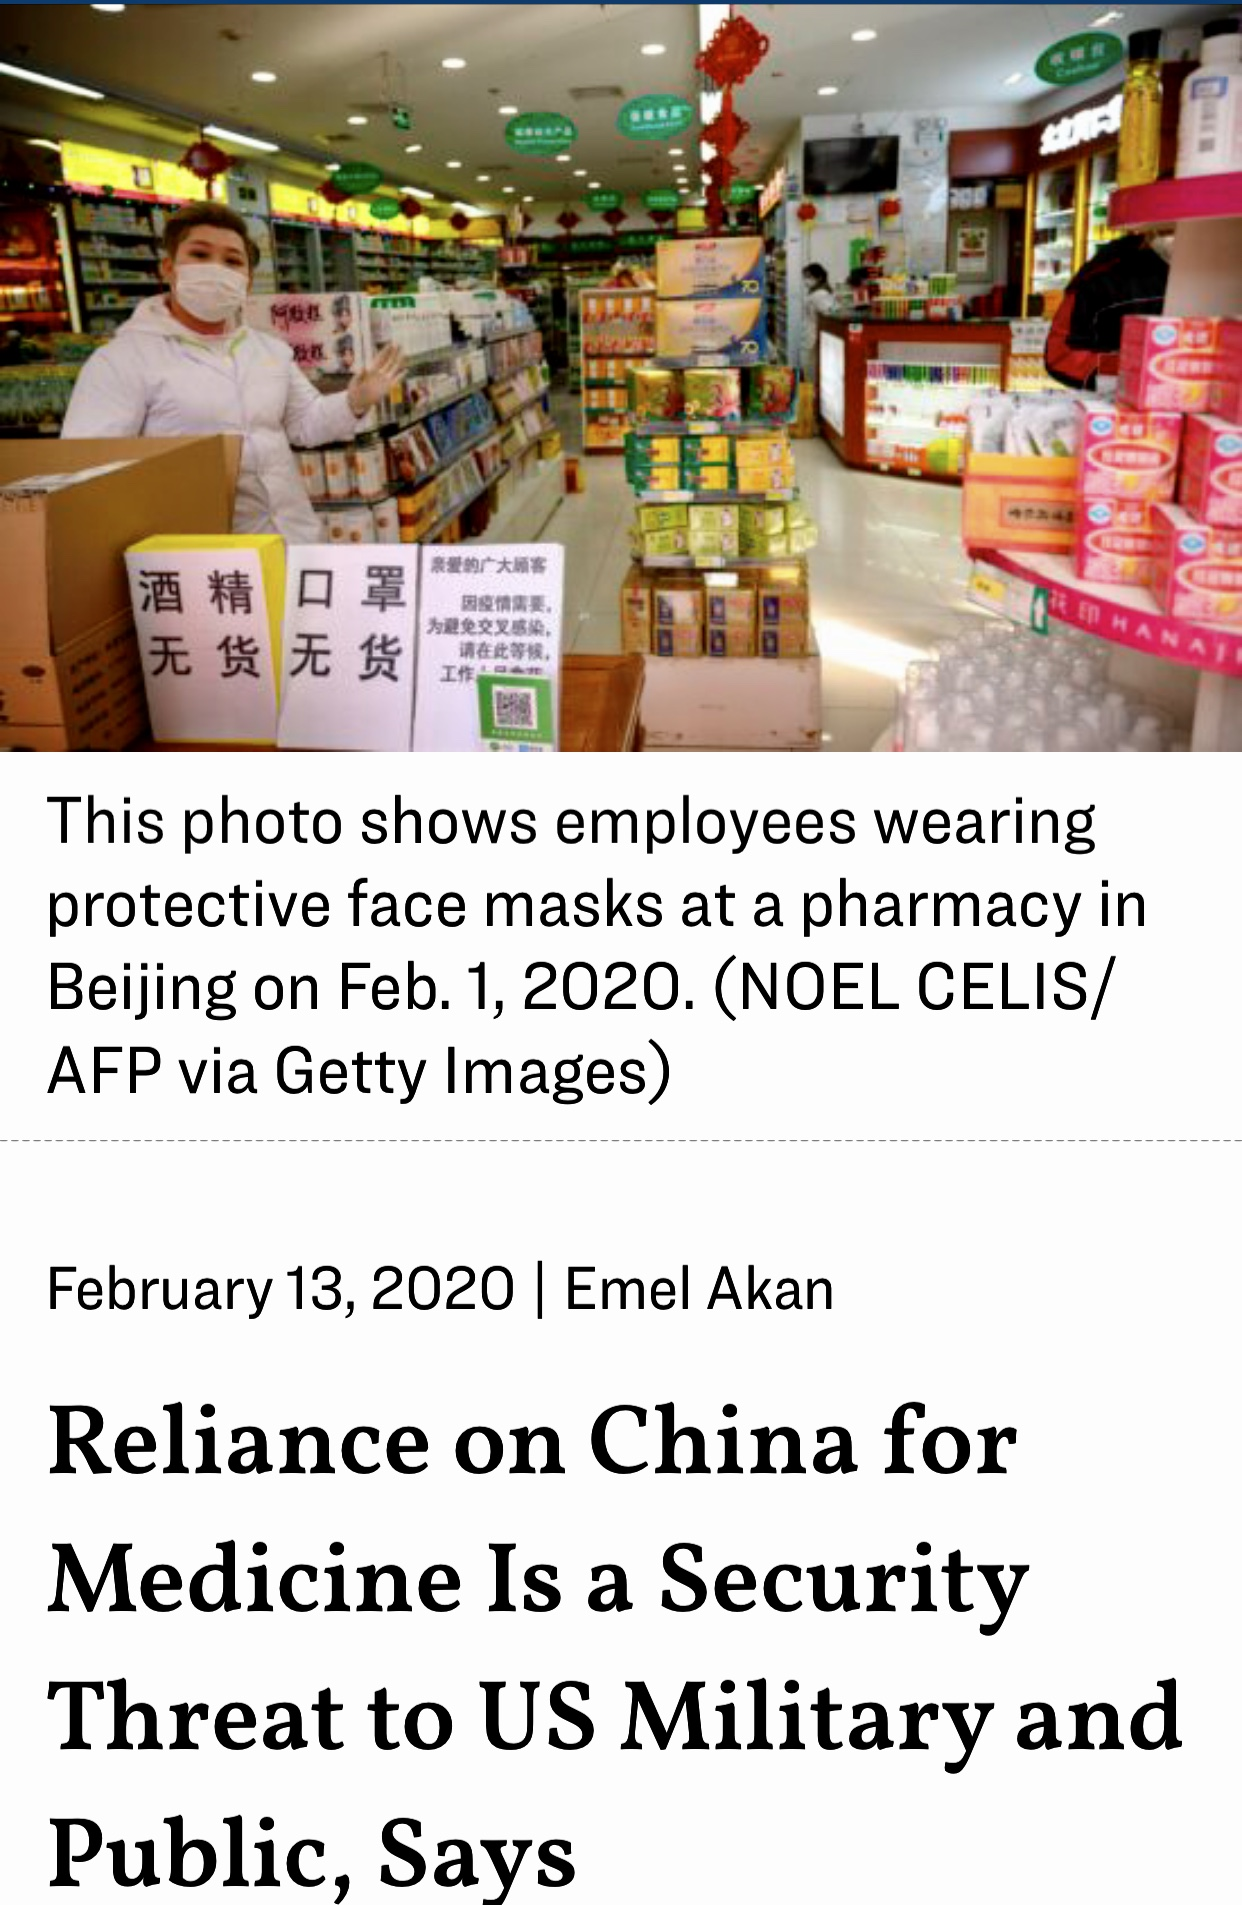 Reliance on China for Medicine Is a Security Threat to US Military and Public